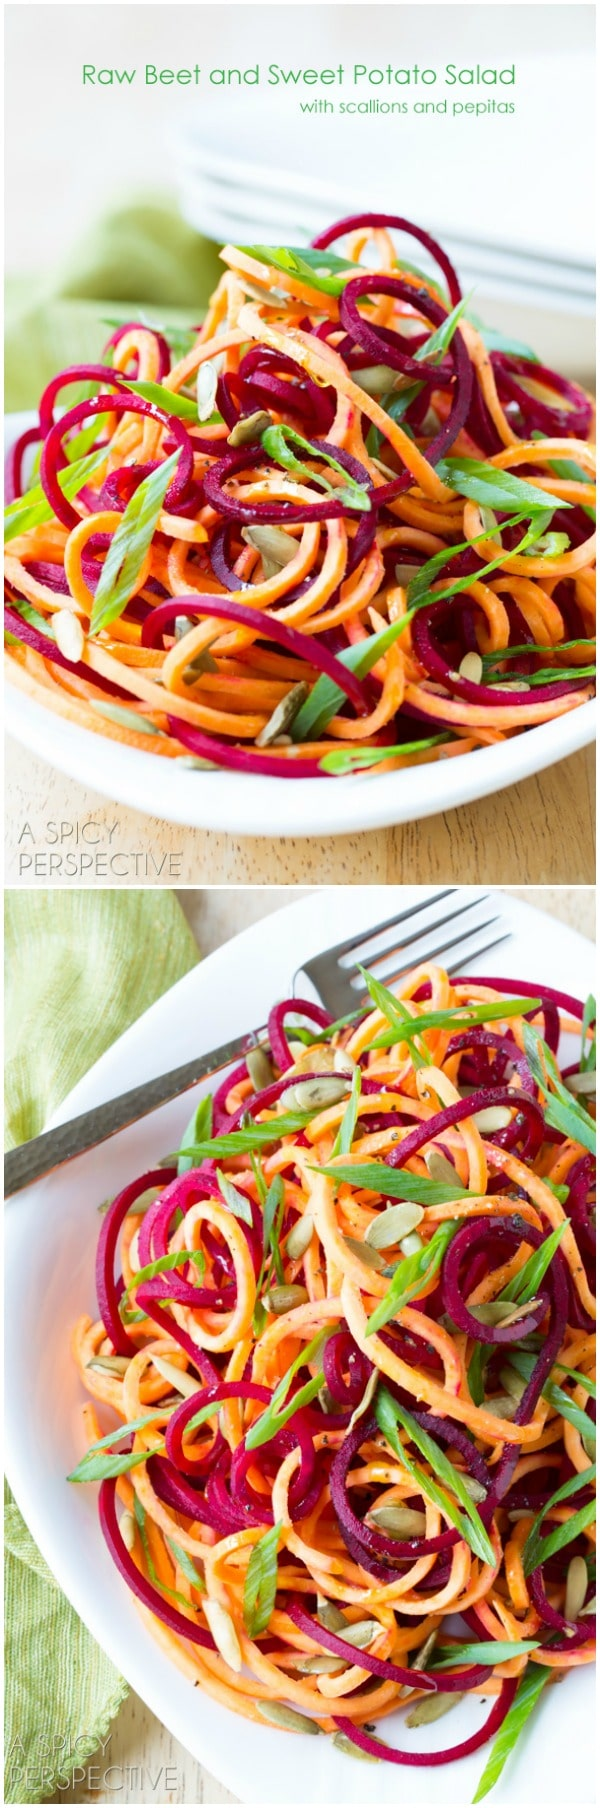 Raw Beet and Sweet Potato Salad Recipe